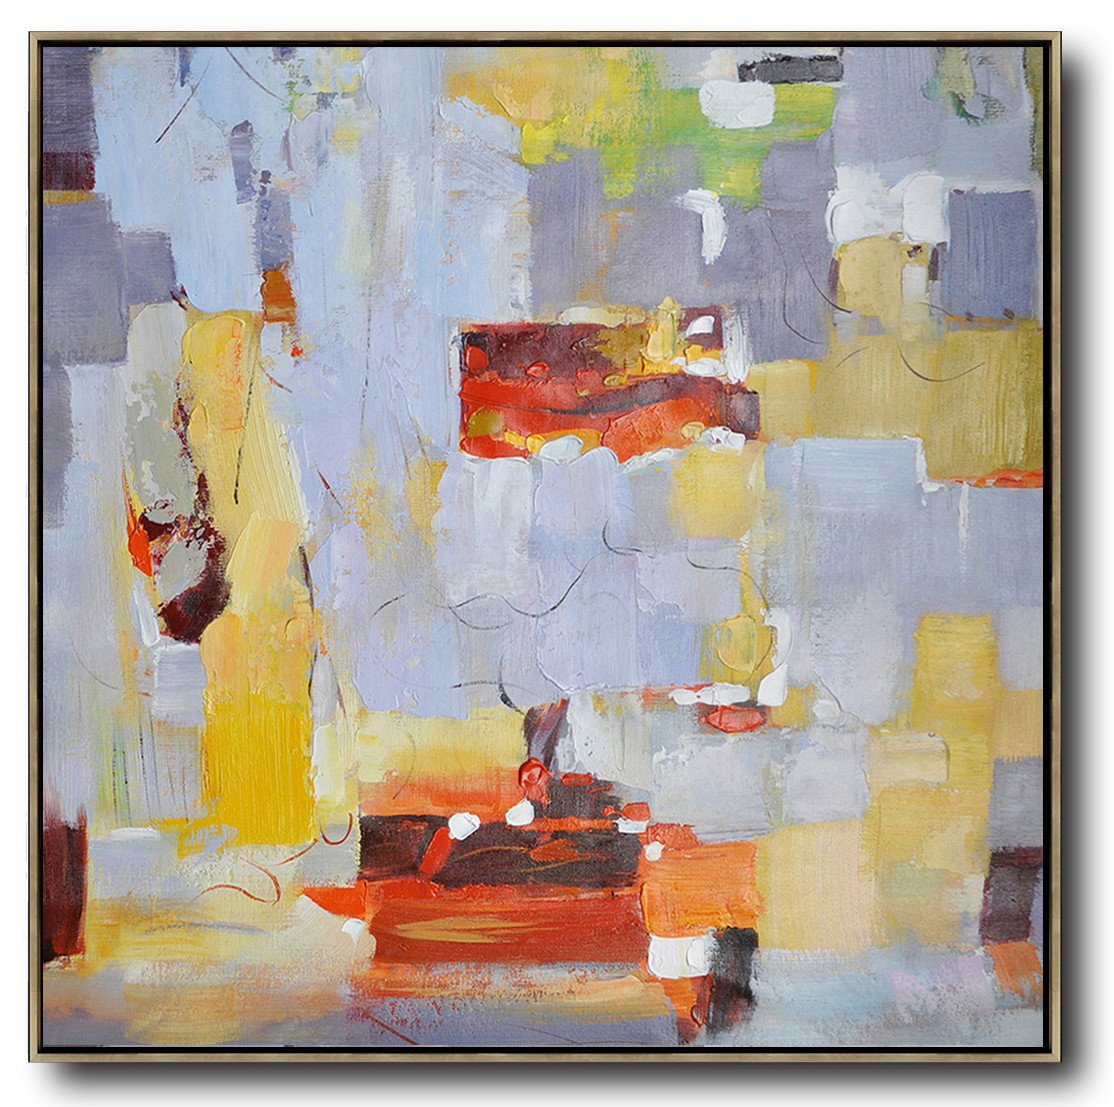 Huge Abstract Painting On Canvas,Oversized Contemporary Art,Custom Oil Painting,Violet Ash,Yellow,Red,Orange.etc